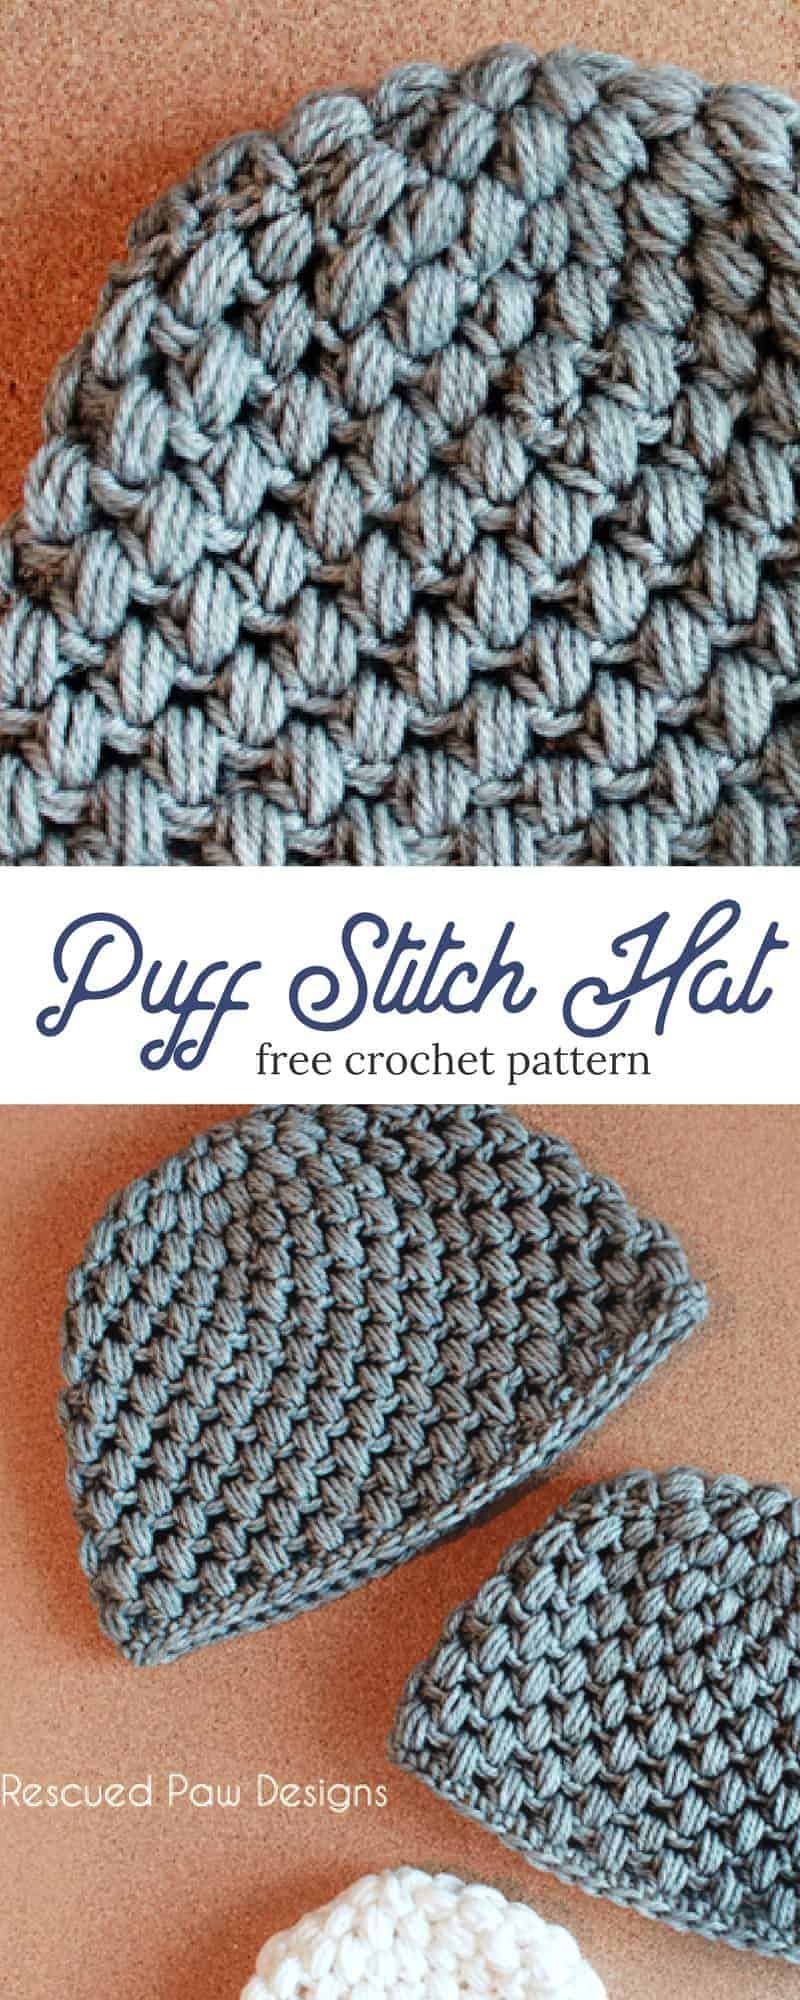 Make This Puff Stitch Crochet That Today With This Free Crochet Pattern From Rescued Paw Desig In 2020 Crochet Hat For Beginners Crochet Hats Crochet Hats Free Pattern